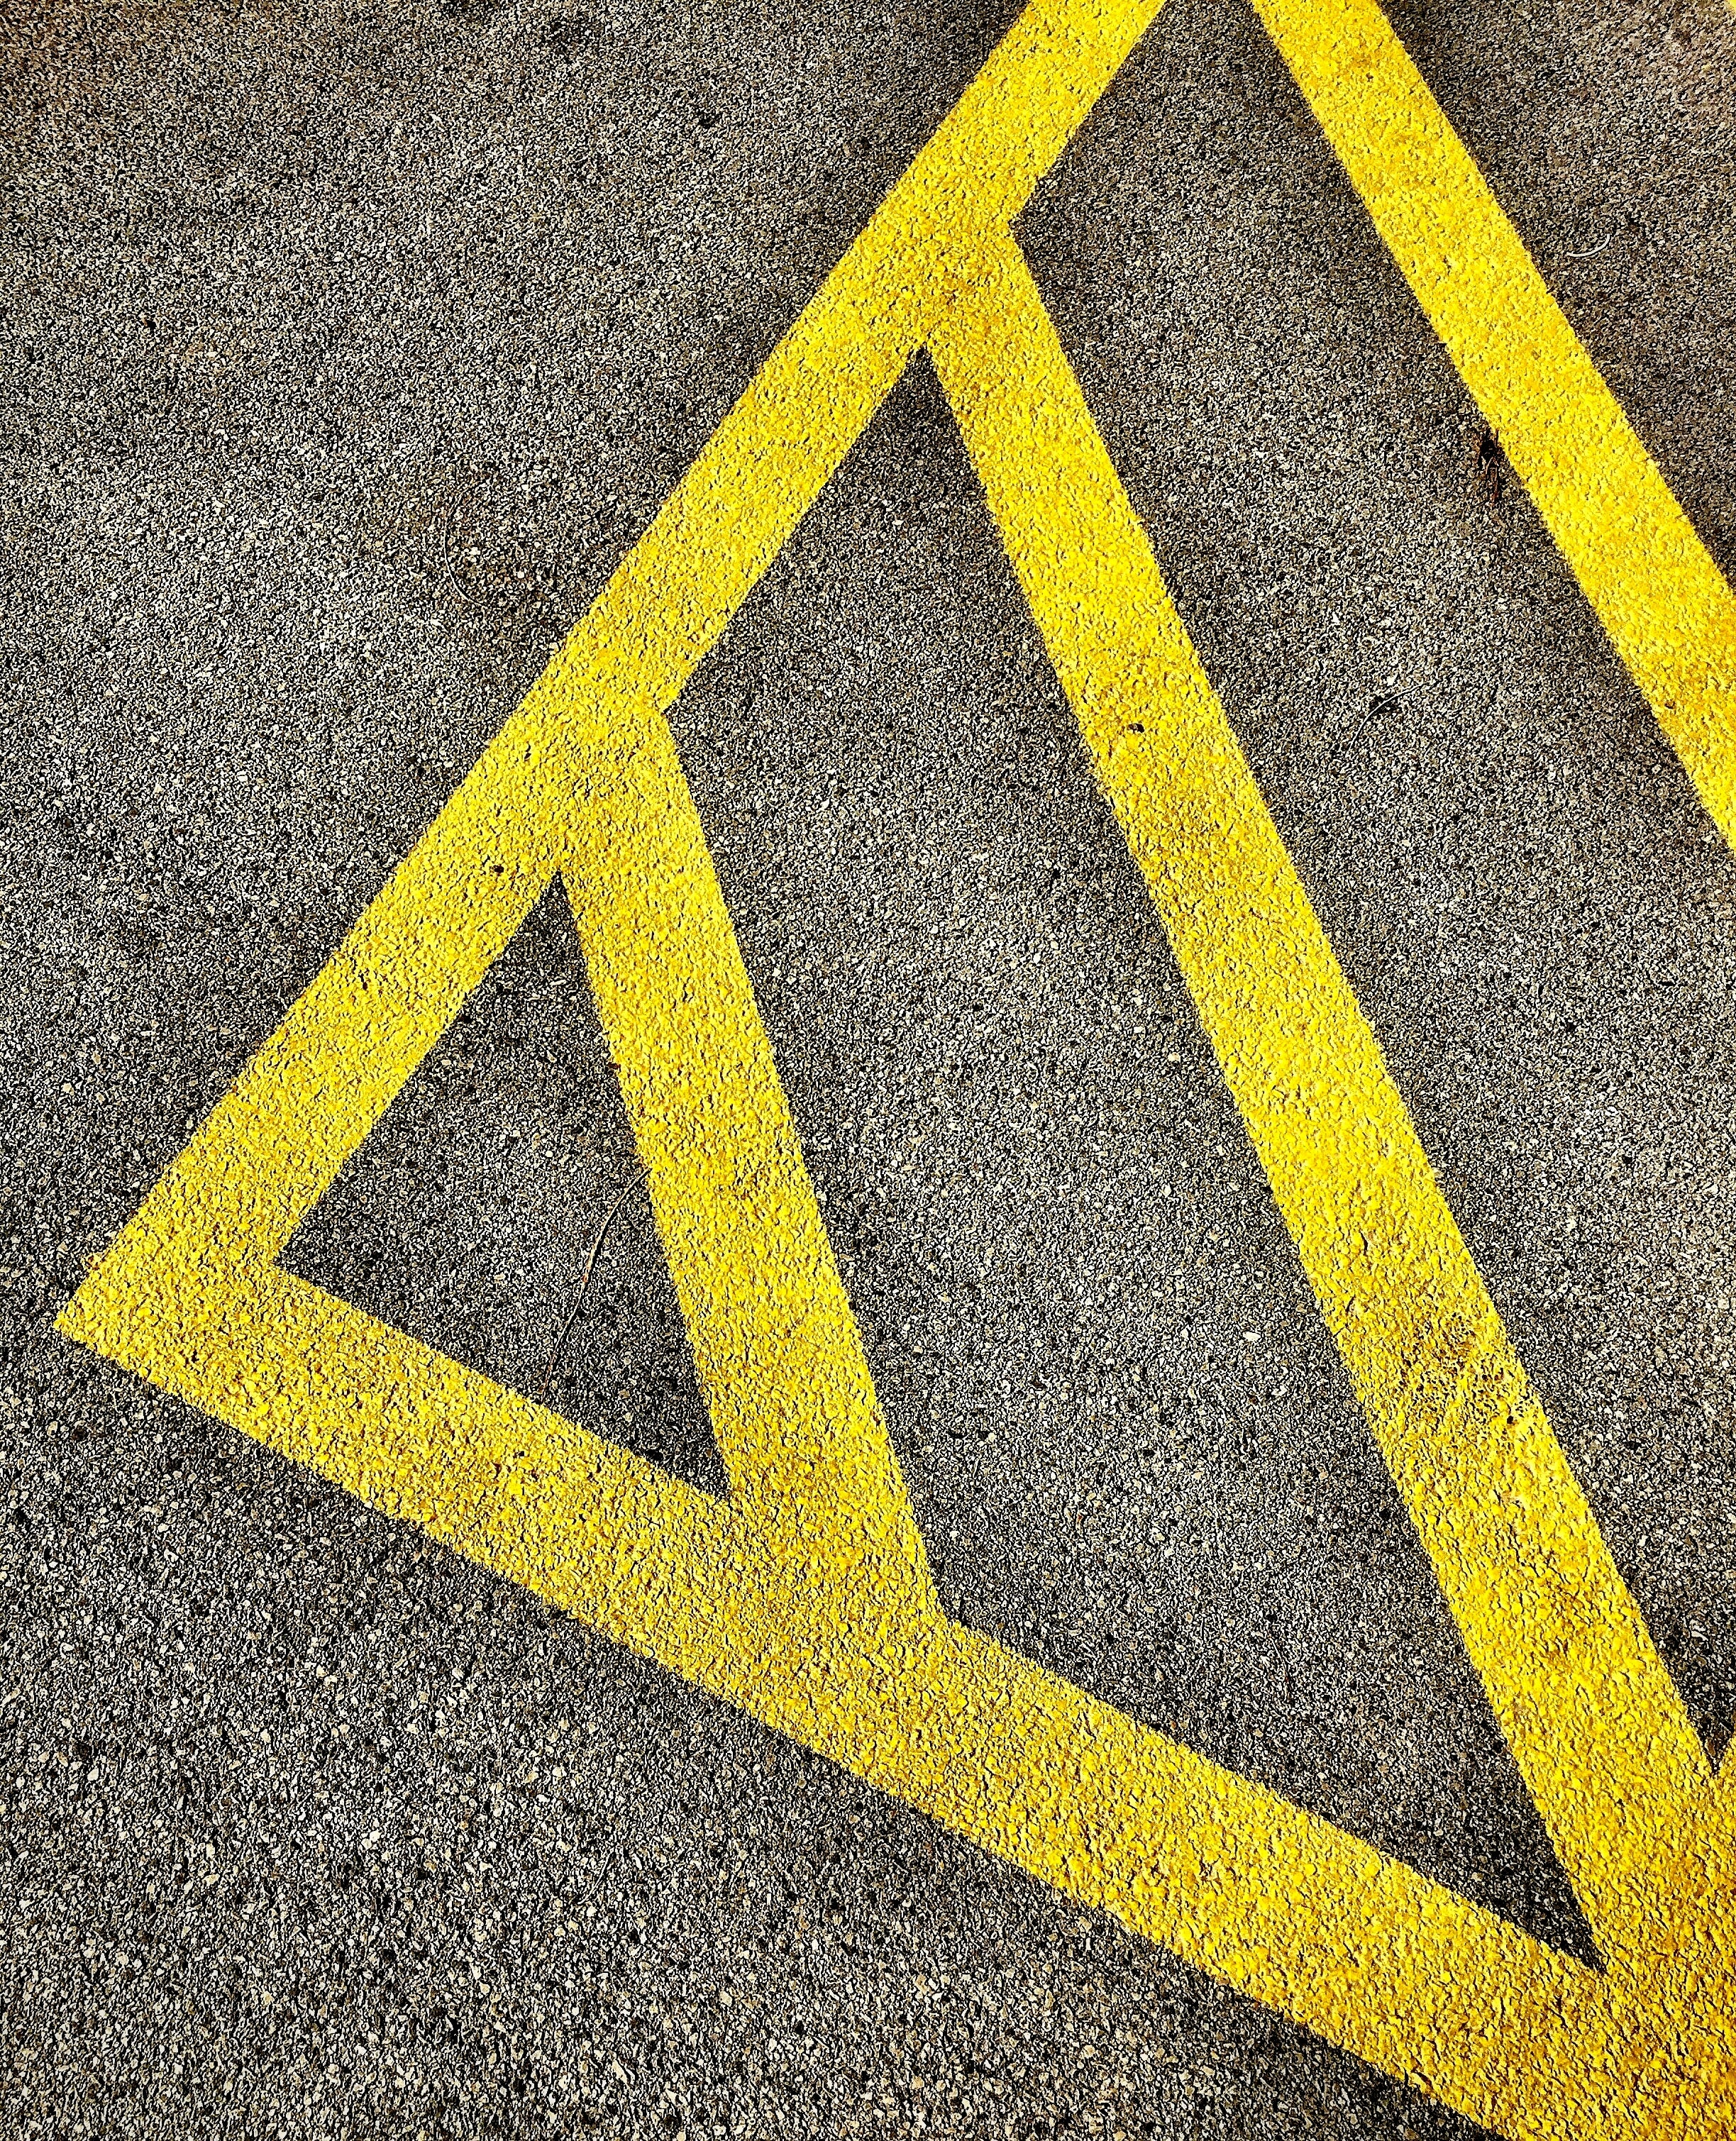 gray and yellow concrete pavement close-up photo